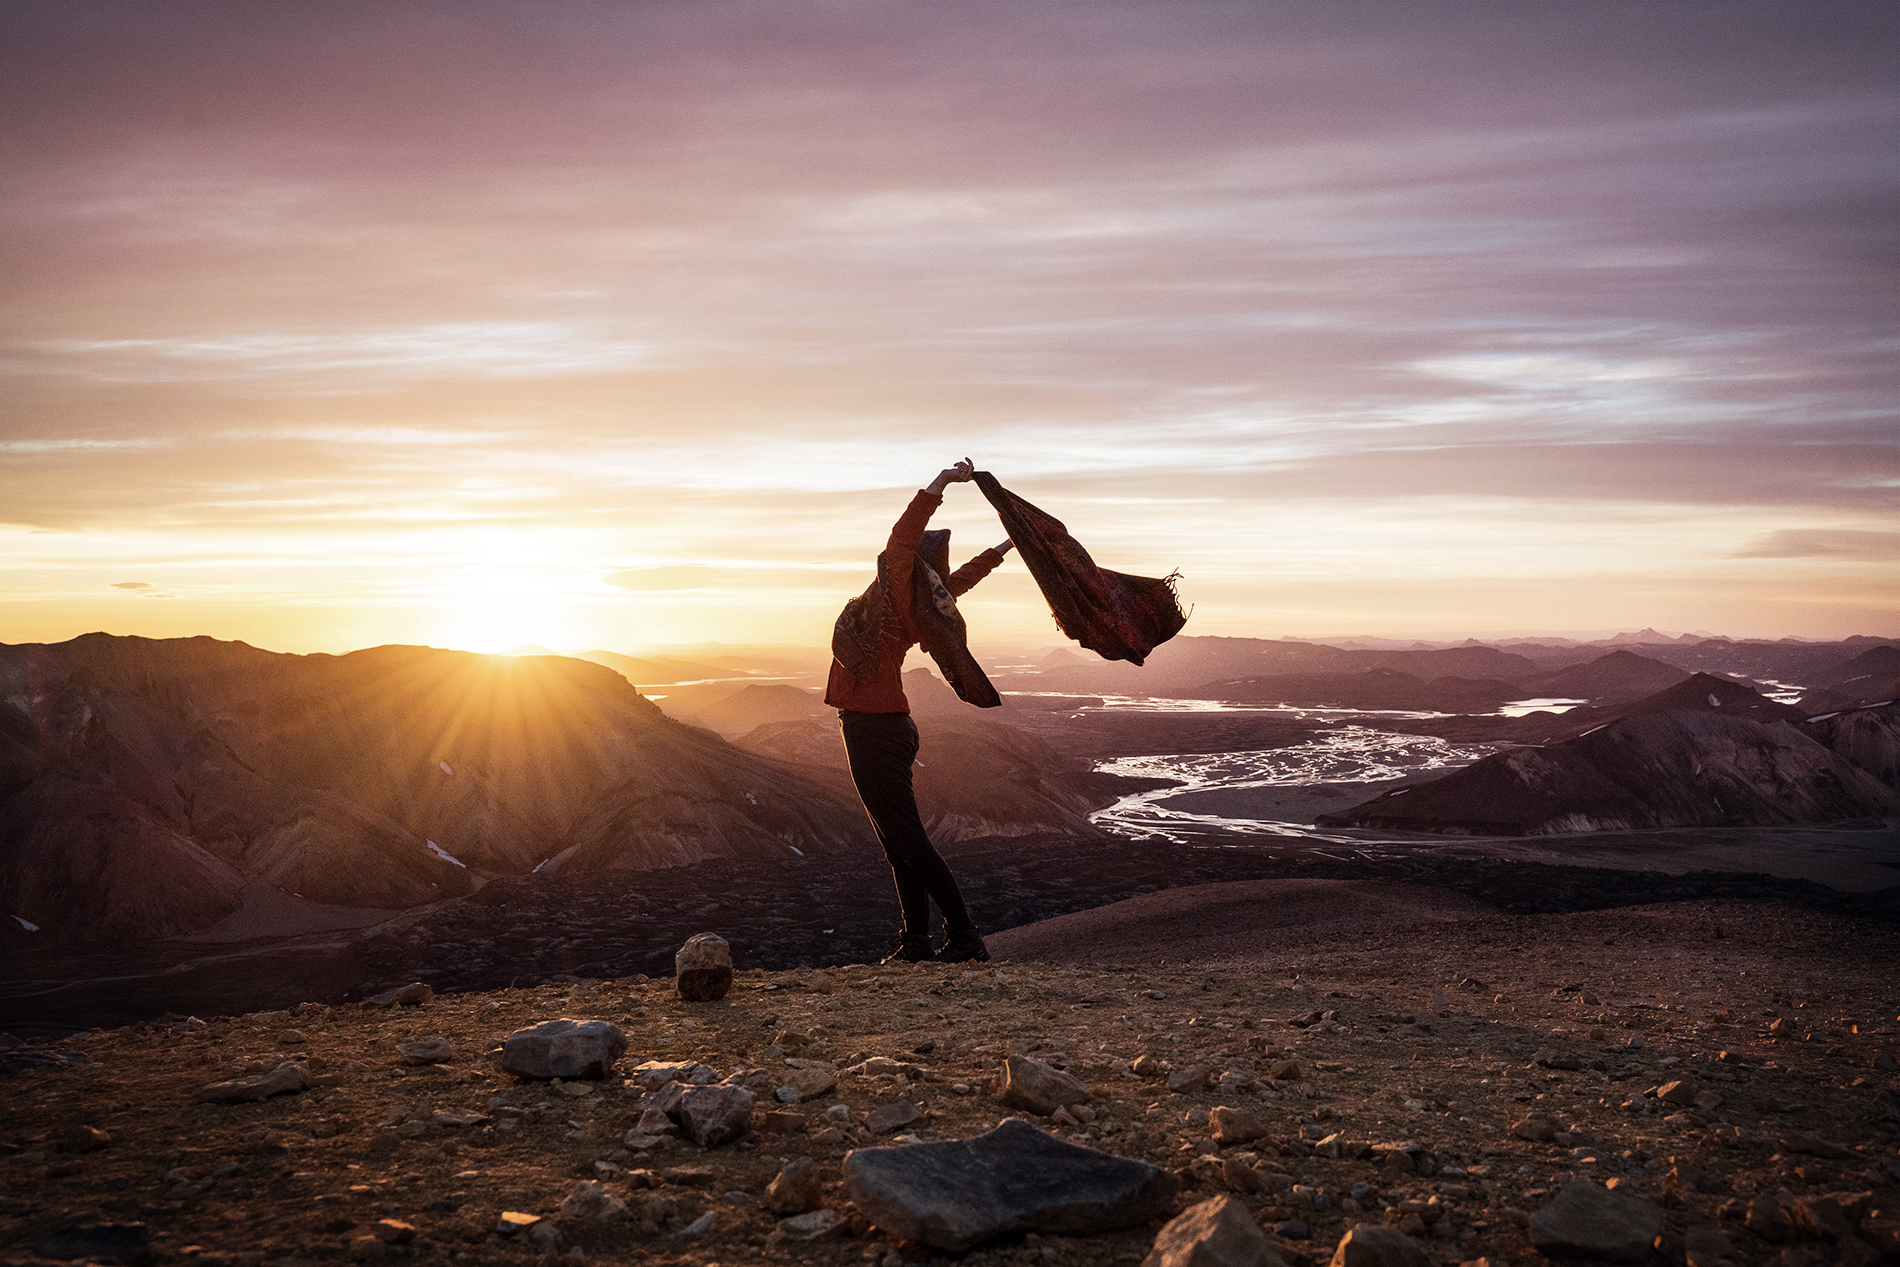 A hiker enjoying the feeling of freedom on top of a mountain at sunrise